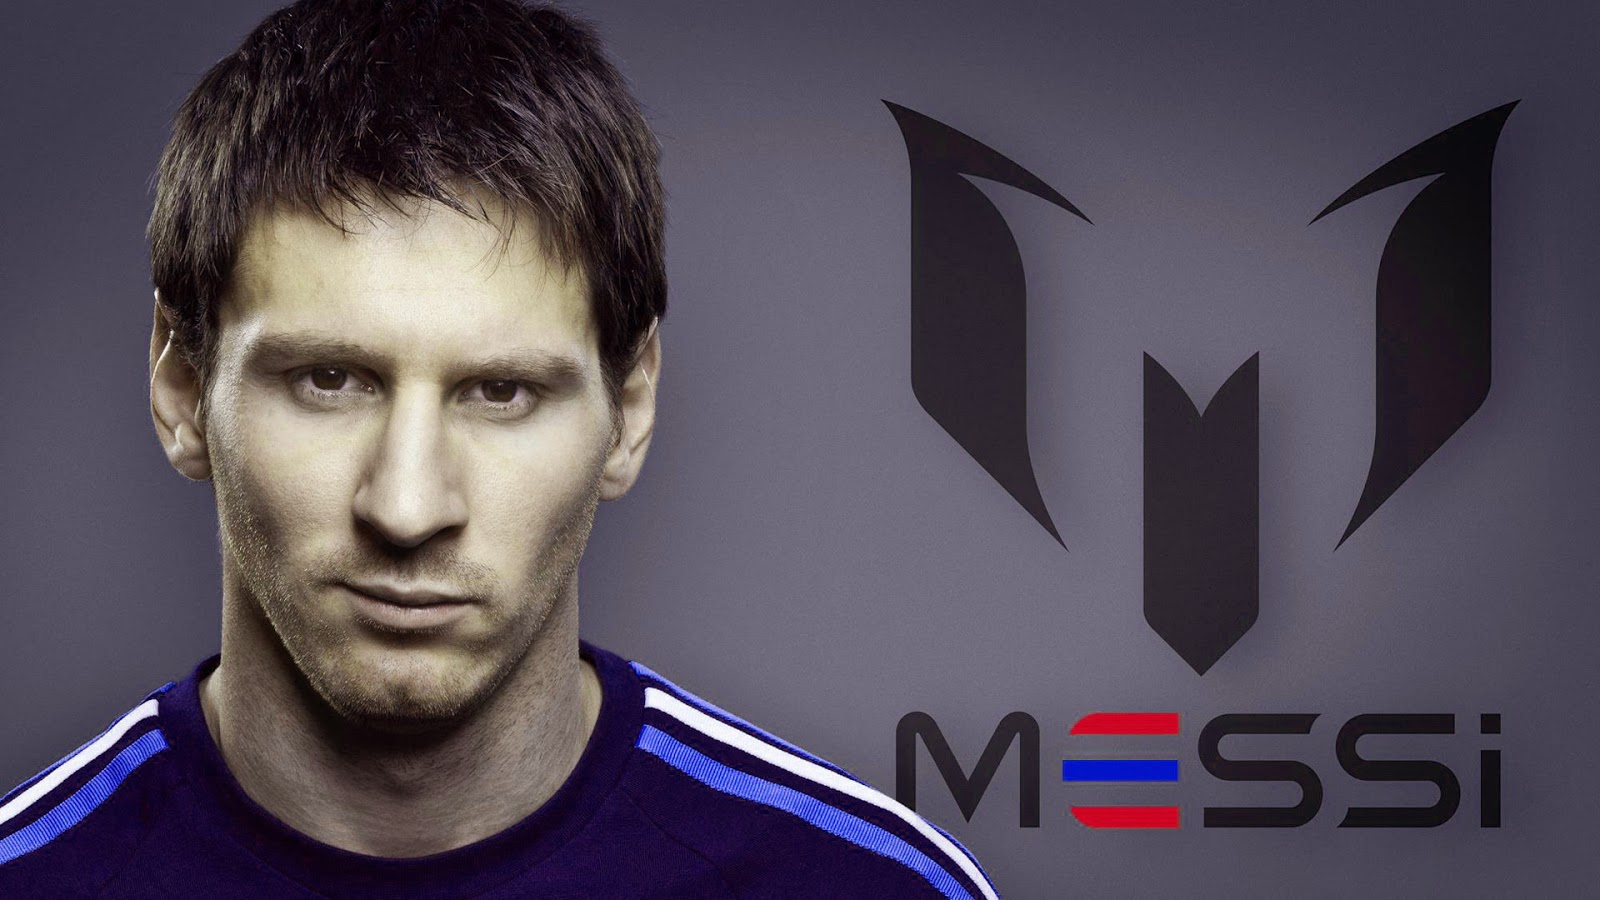 Messi wide wallpaper